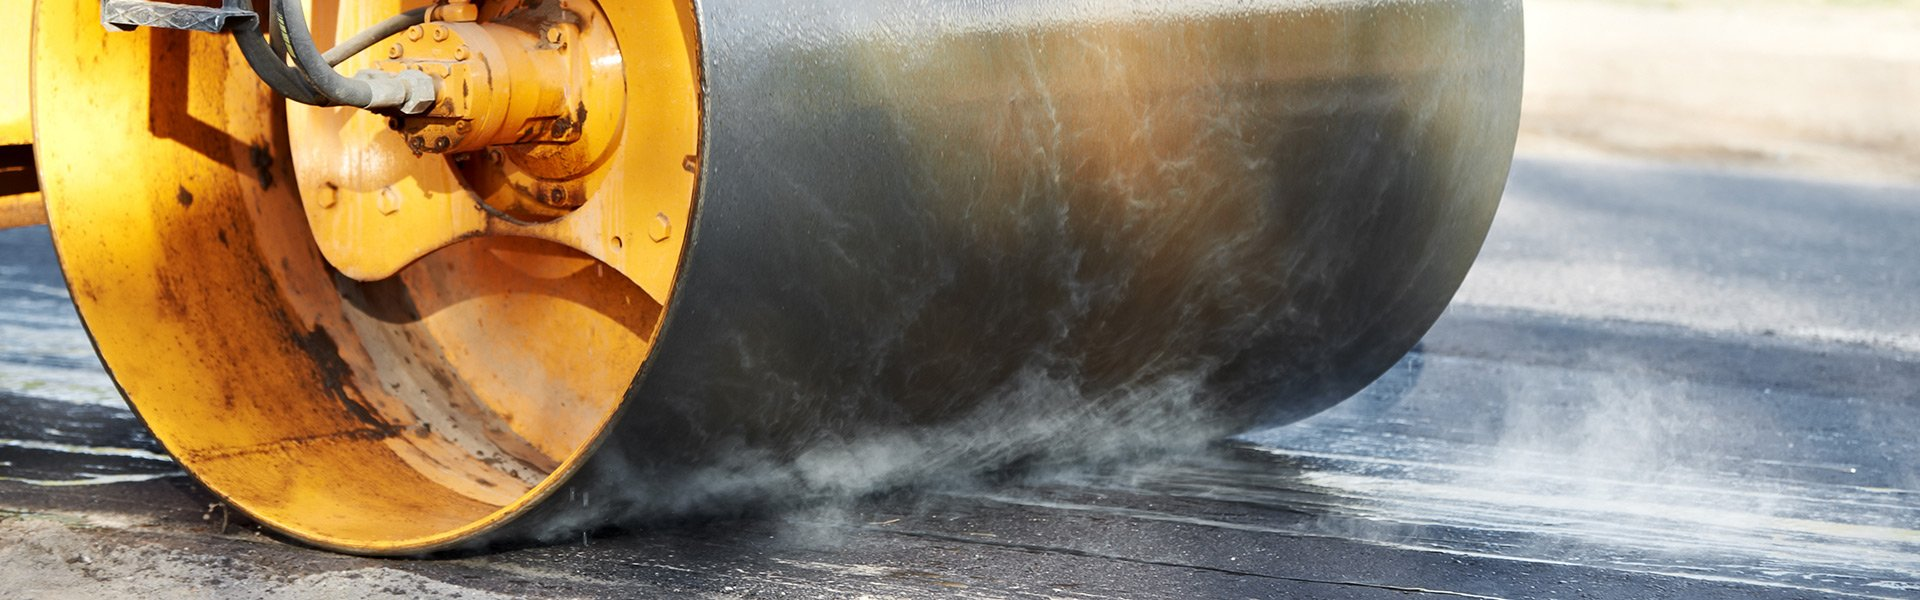 Paving professionals experience